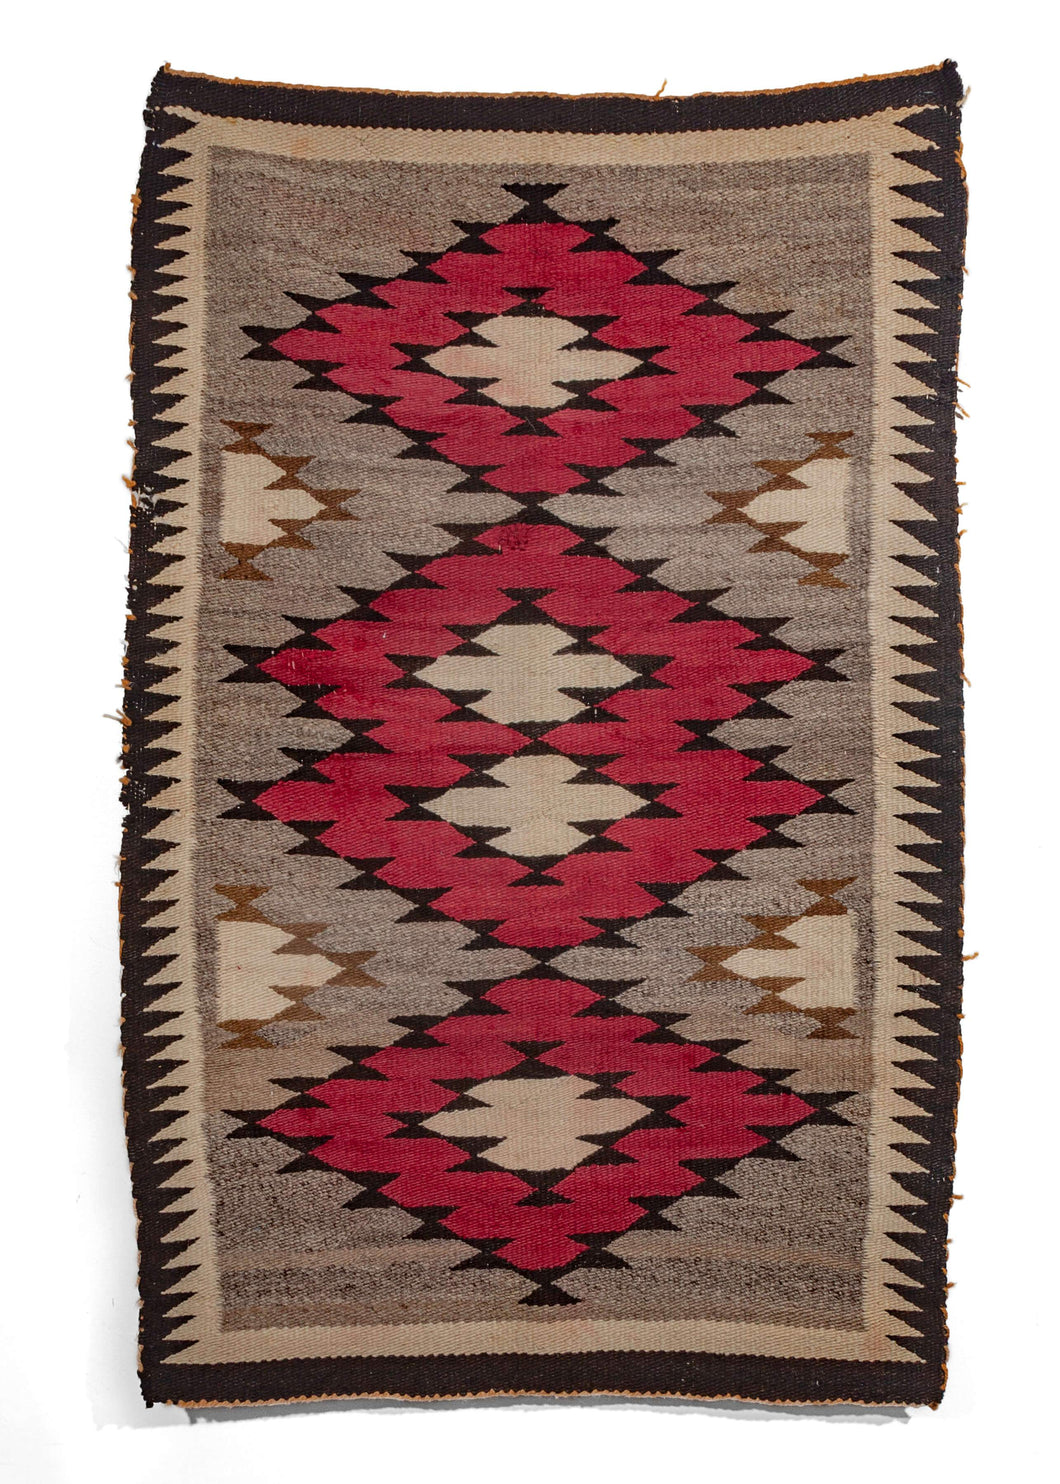 Antique wool Navajo Rug with bold diamond design in natural wool, red, black and gold